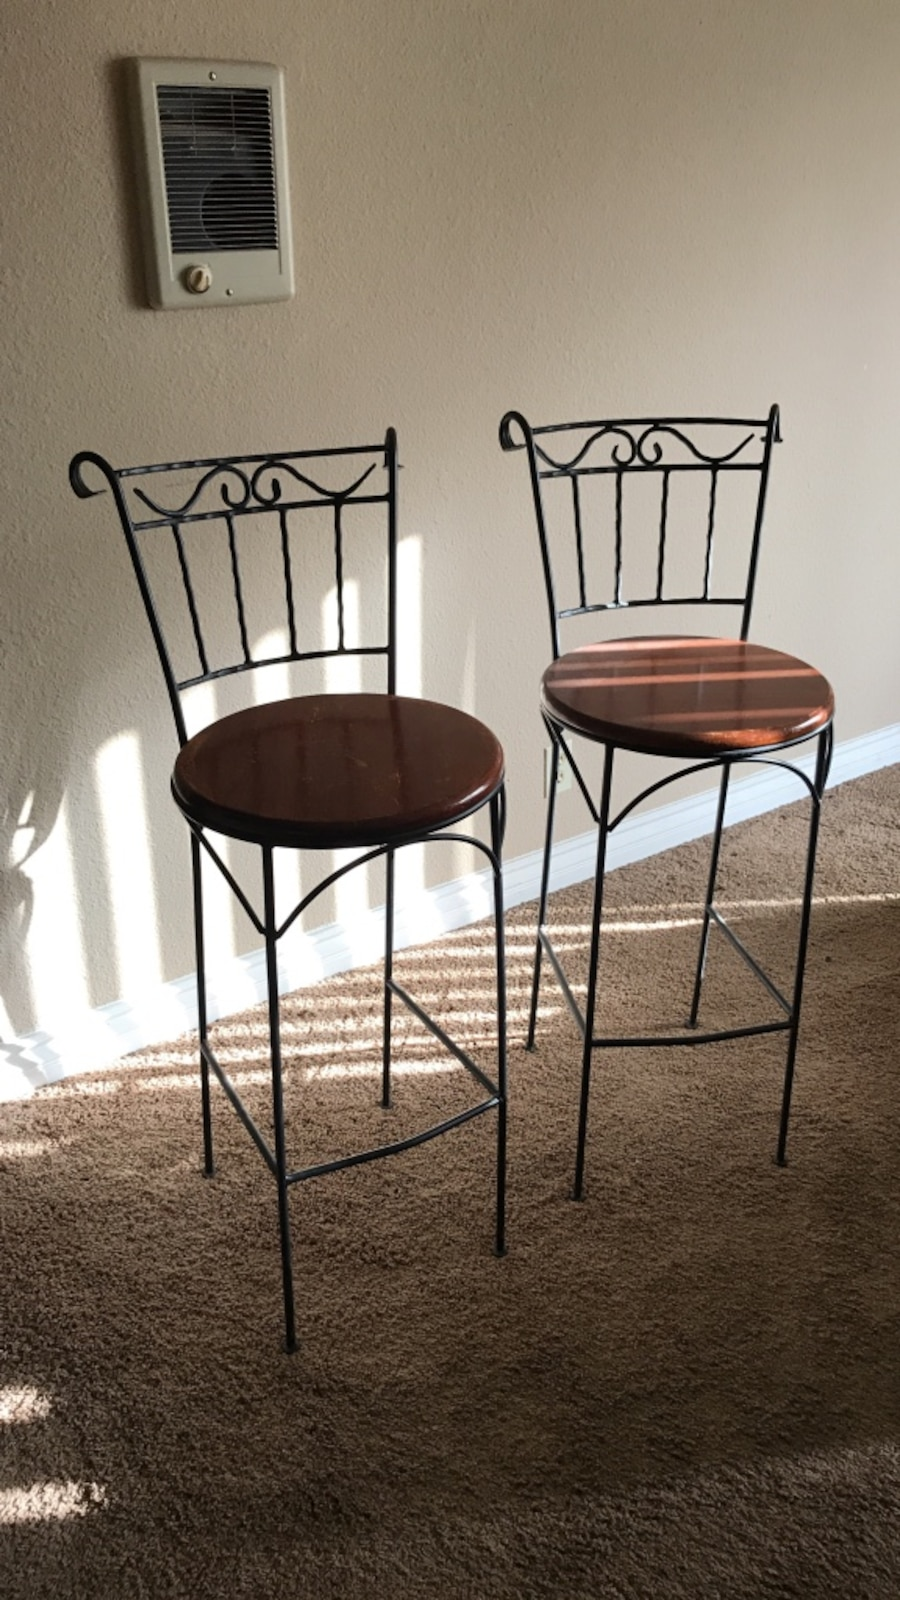 Used 2 Bar Stools Black And Brown In San Diego